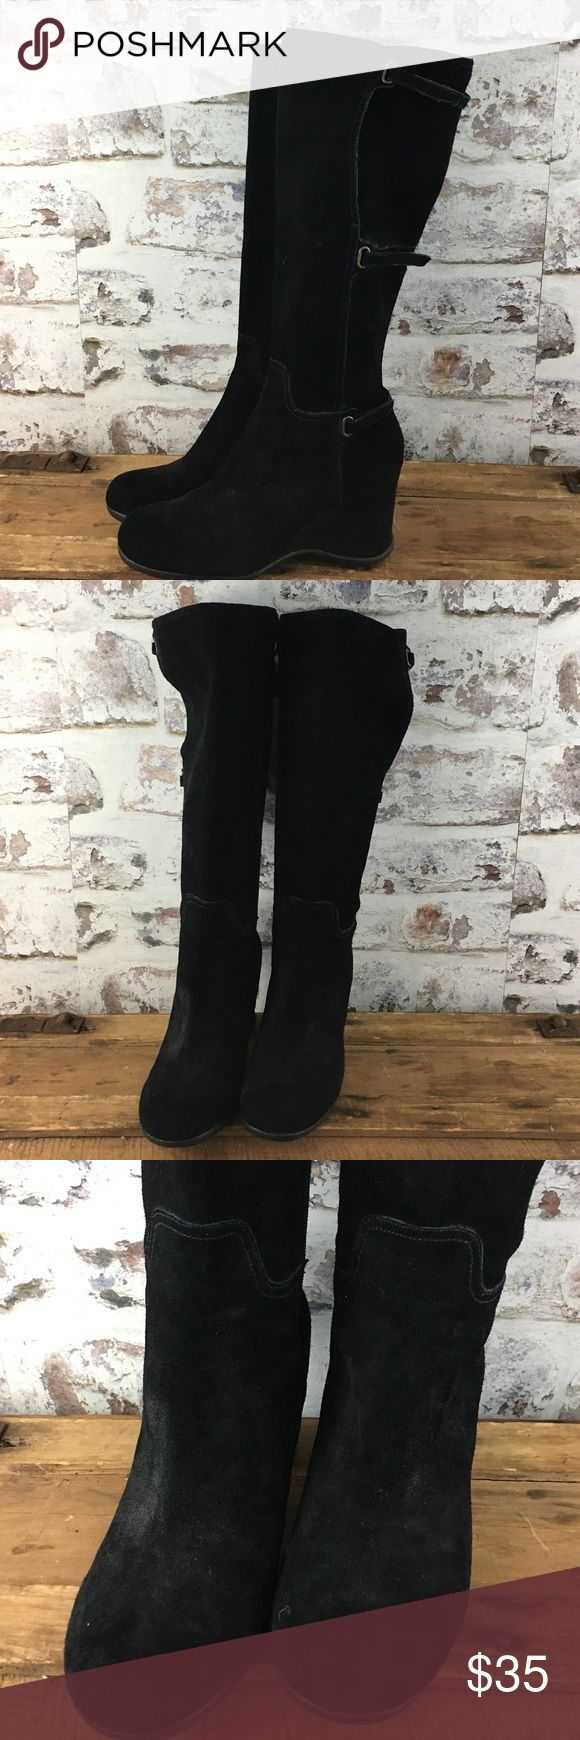 """Me Too tall suede wedge boots Black suede wedge boots with 3"""" wedges. Very nice! me too Shoes Heeled Boots"""